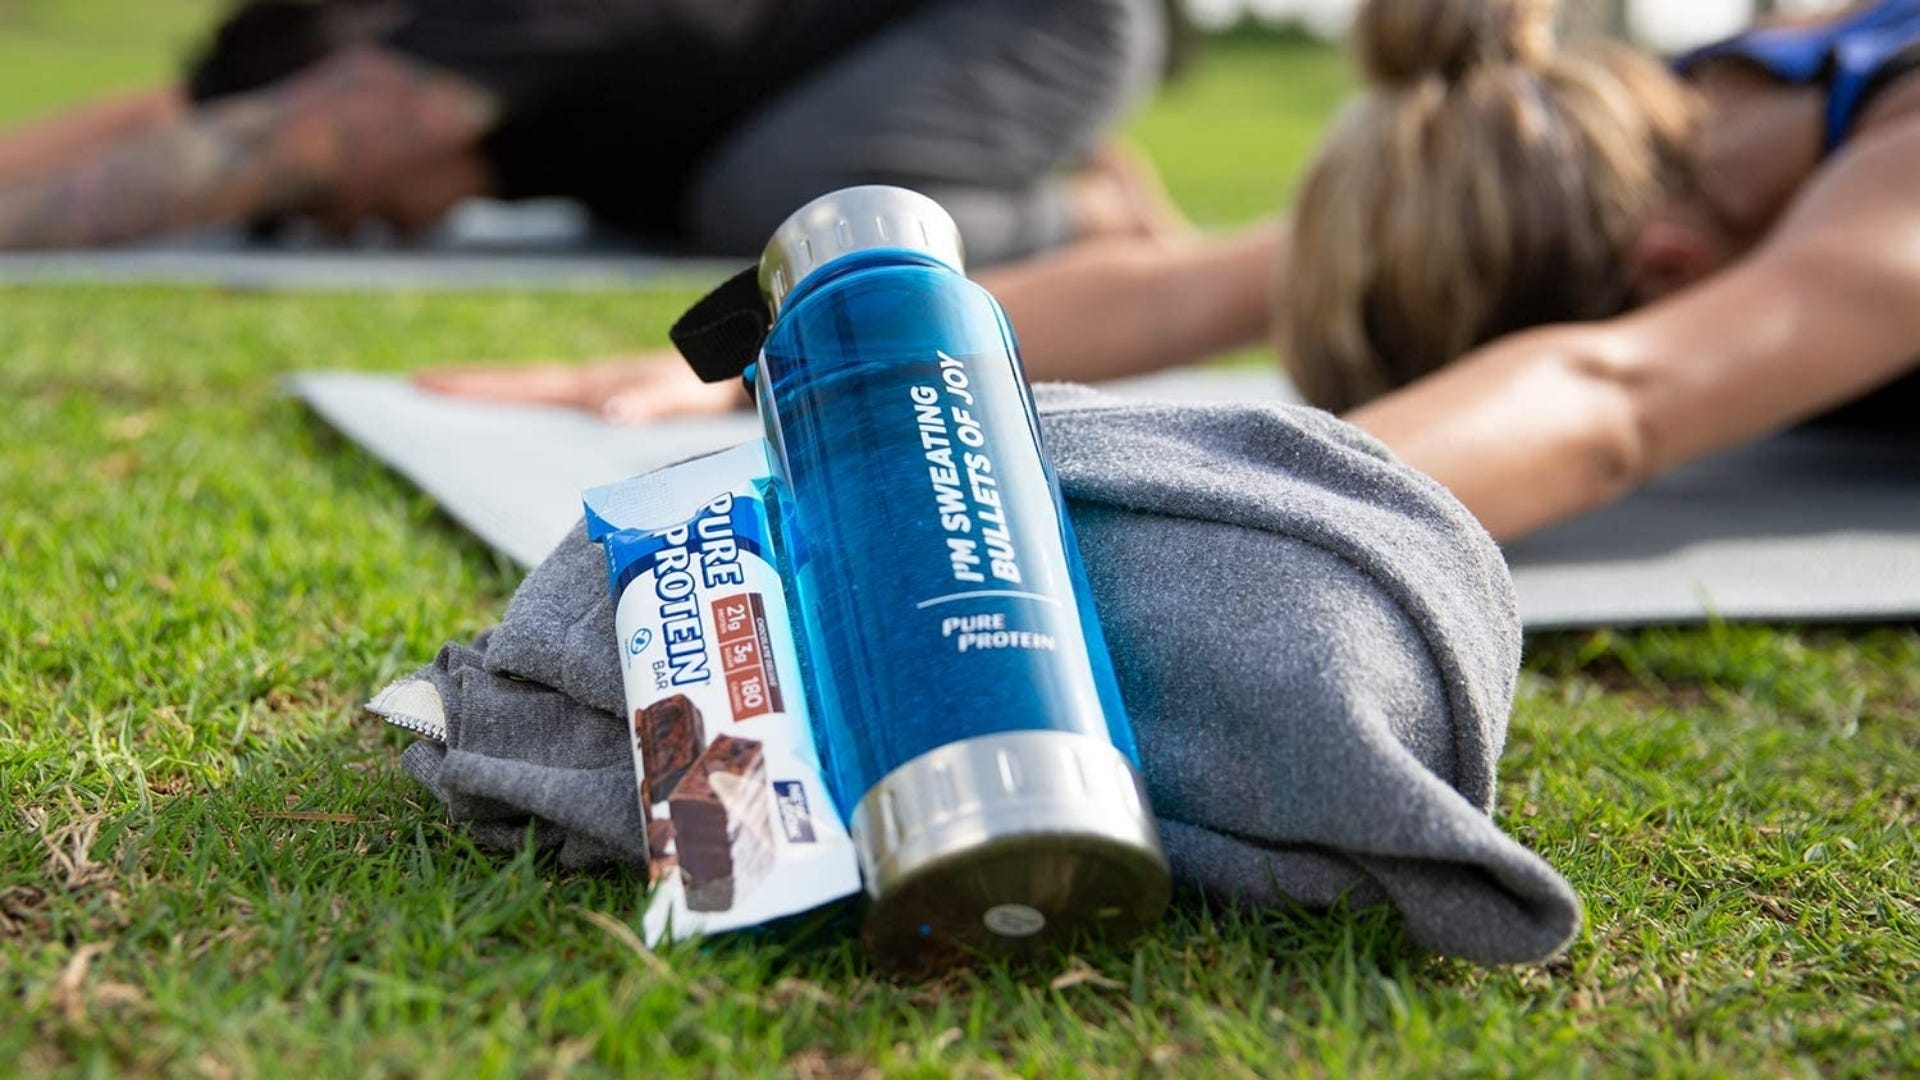 A protein bar sits next to a water bottle on the grass.